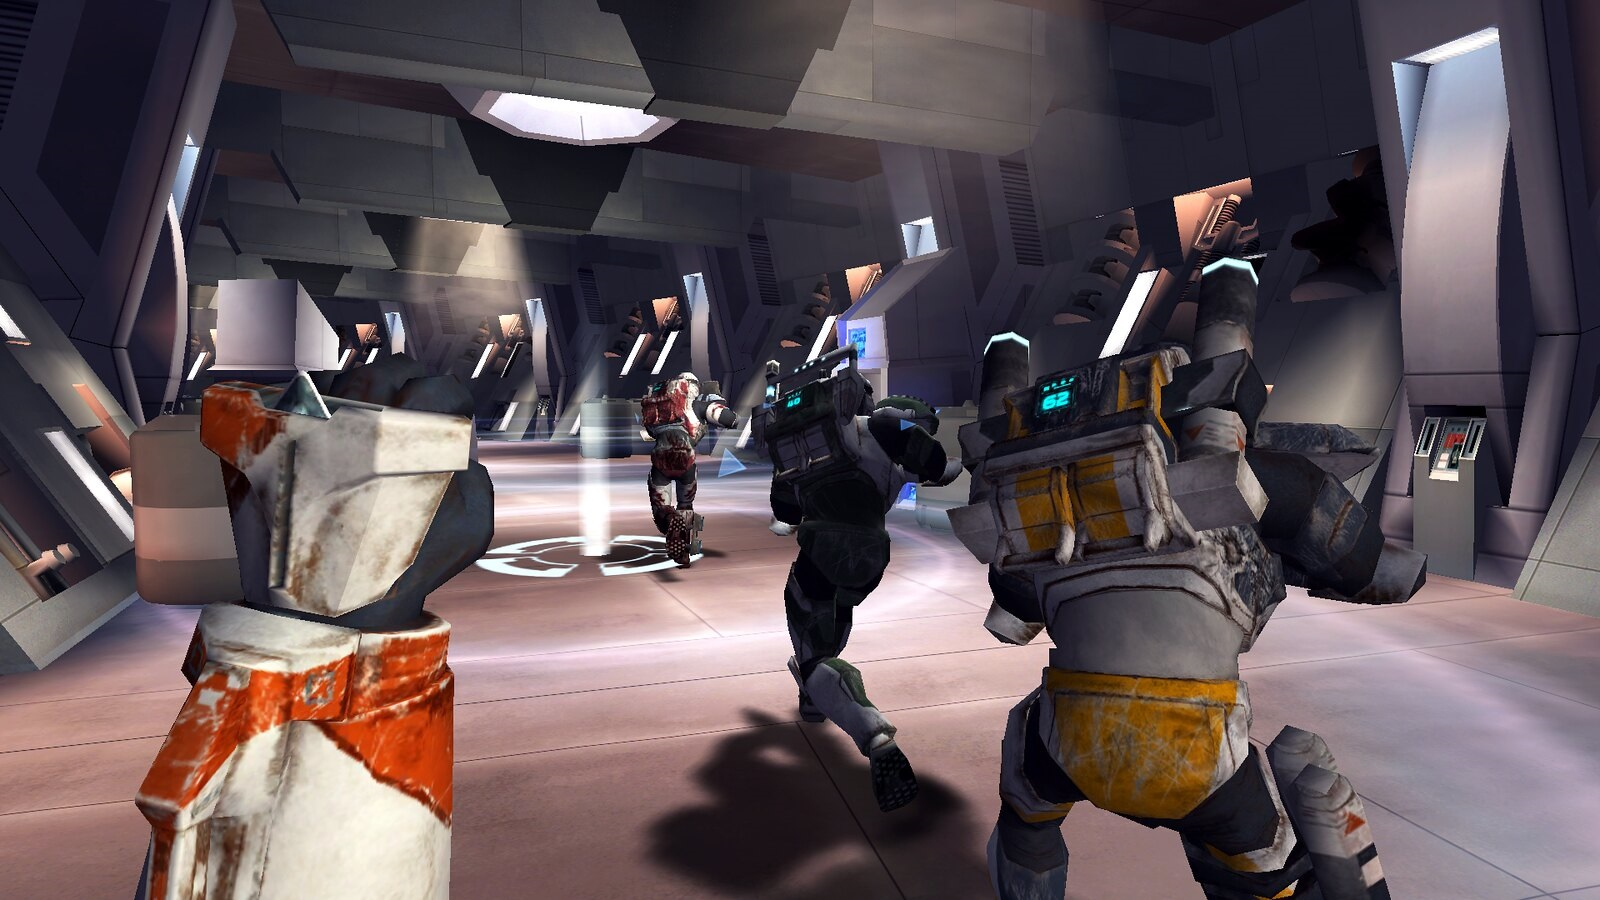 Официально: Aspyr перевыпустит Star Wars: Republic Commando для PS4 и Switch